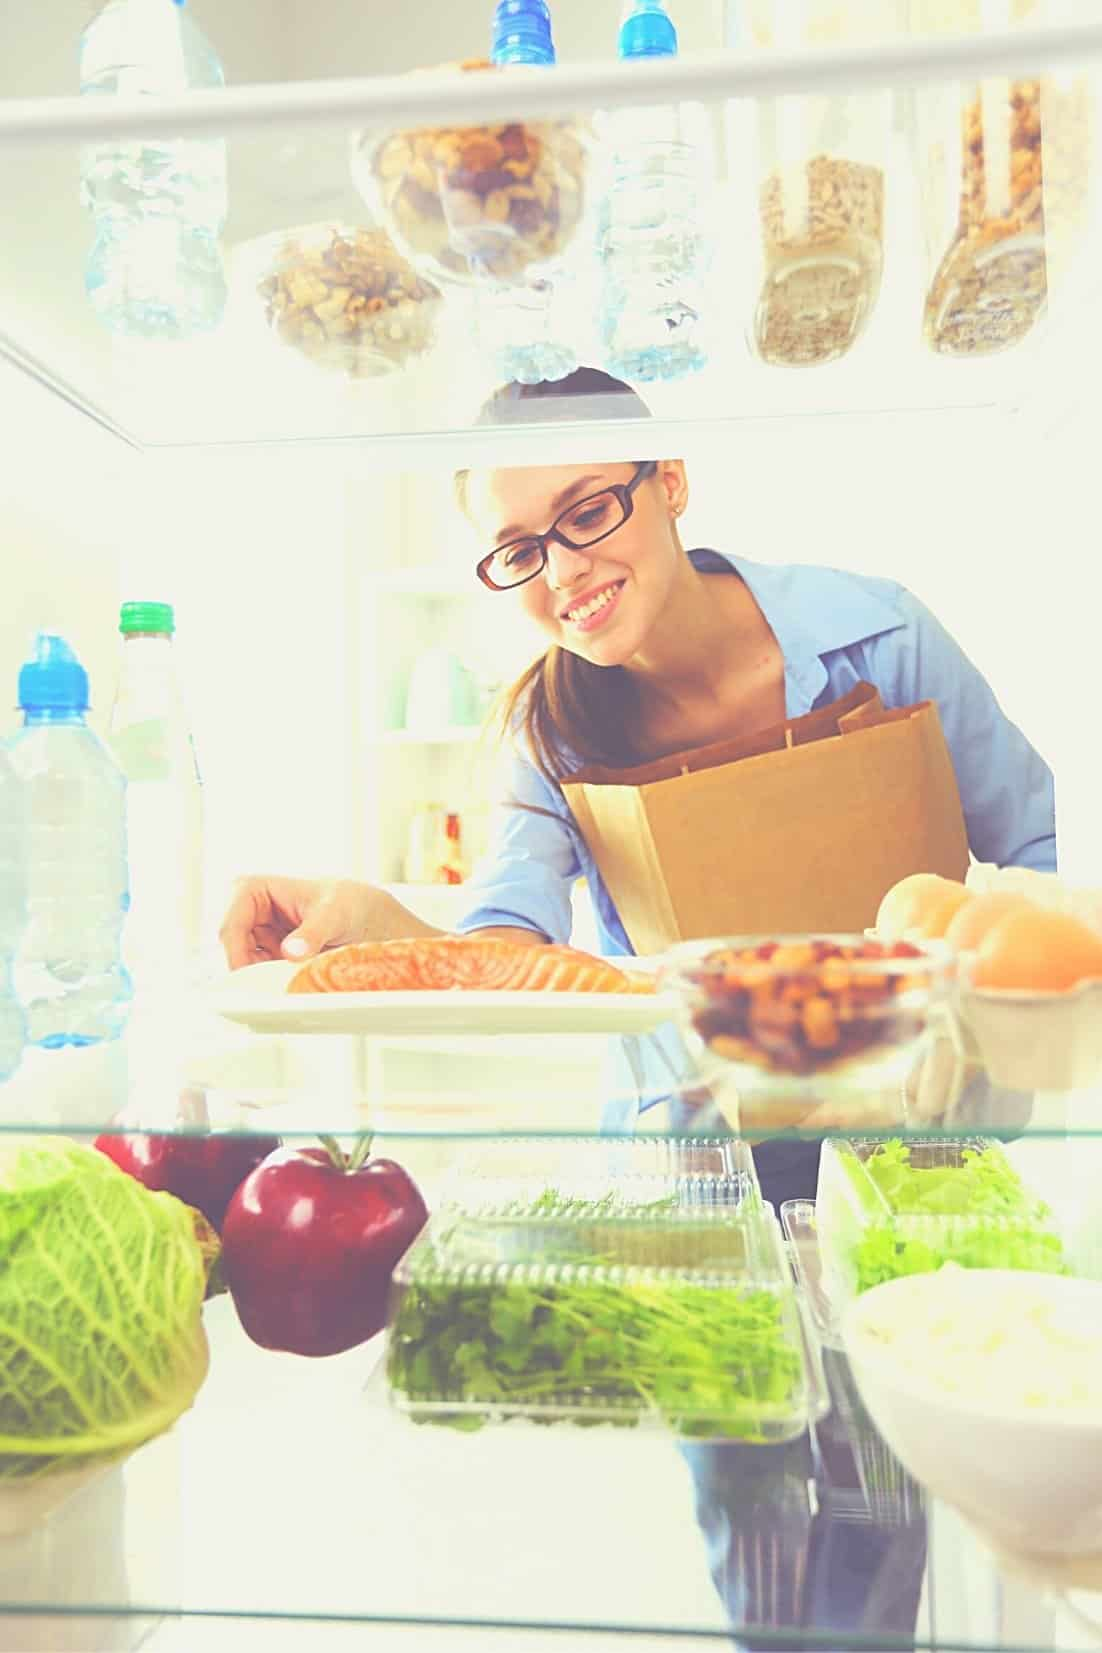 Woman unloading groceries into refrigerator with other items like lettuce, apples, fish, eggs and water bottles, etc.